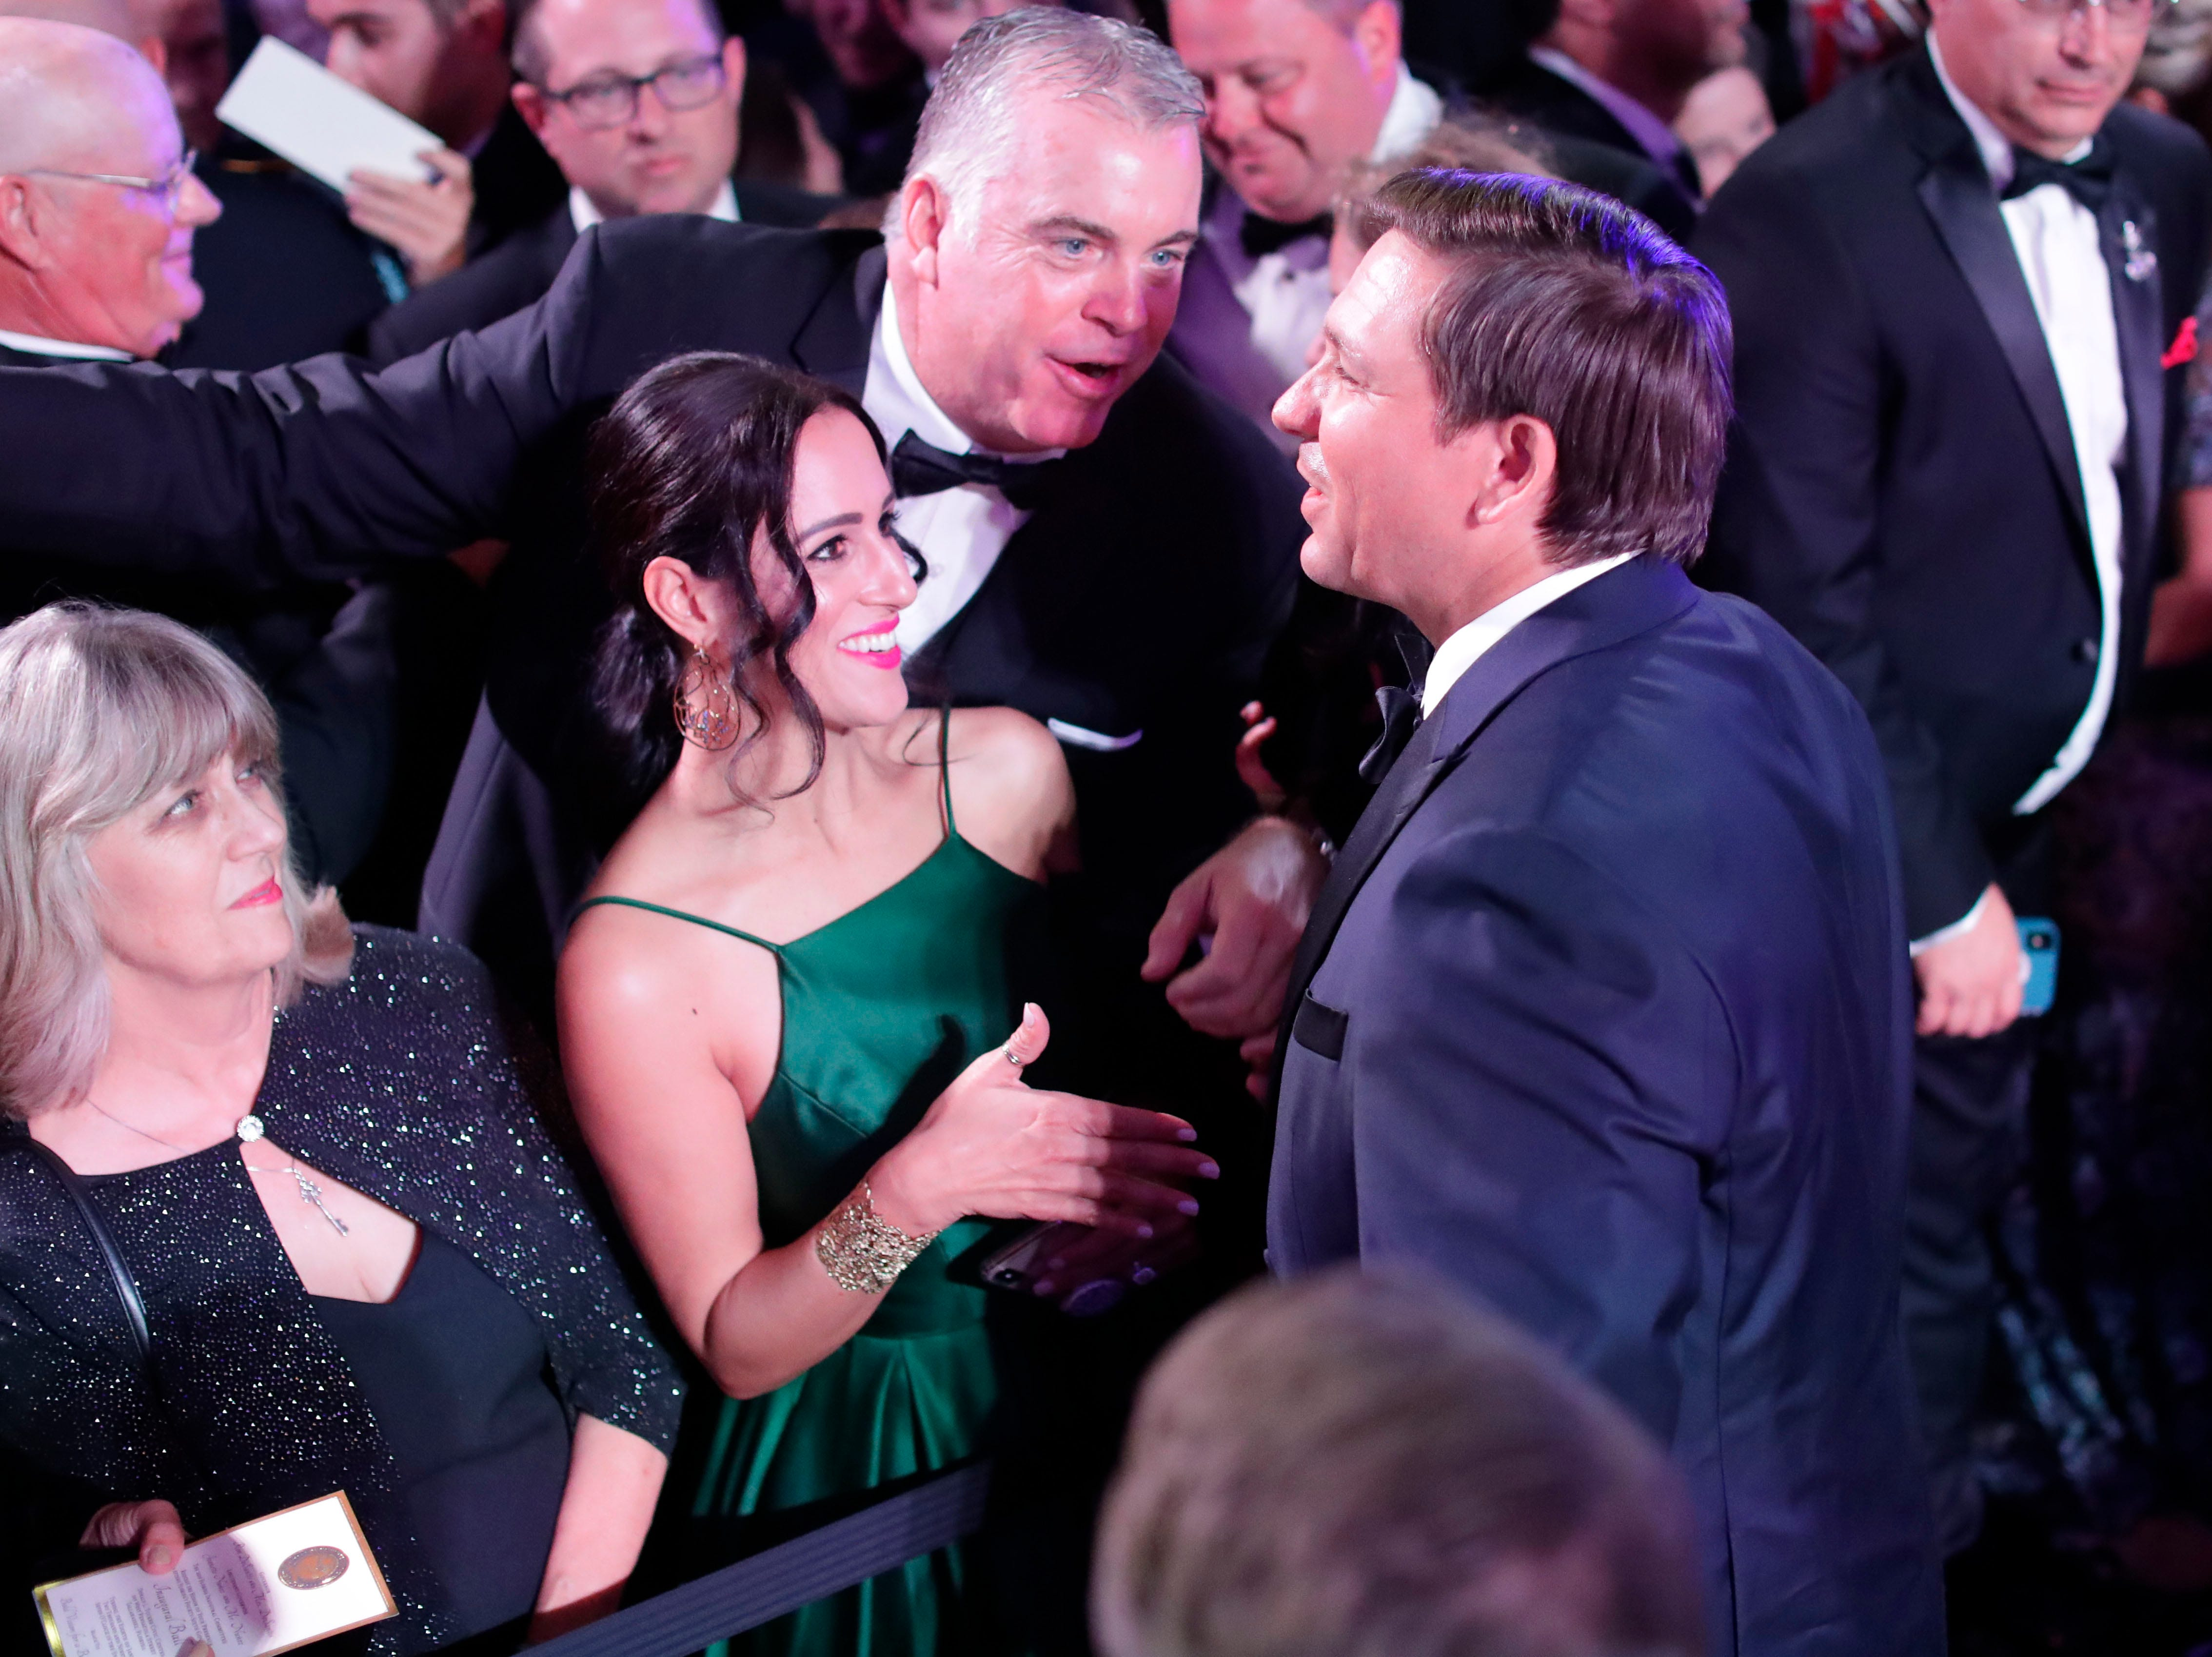 Hundreds of guests from all over Florida attend Florida's 46th Governor's Inaugural Ball at the Tucker Civic Center, Tuesday, Jan. 8, 2019. Gov. Ron DeSantis chats with guests.